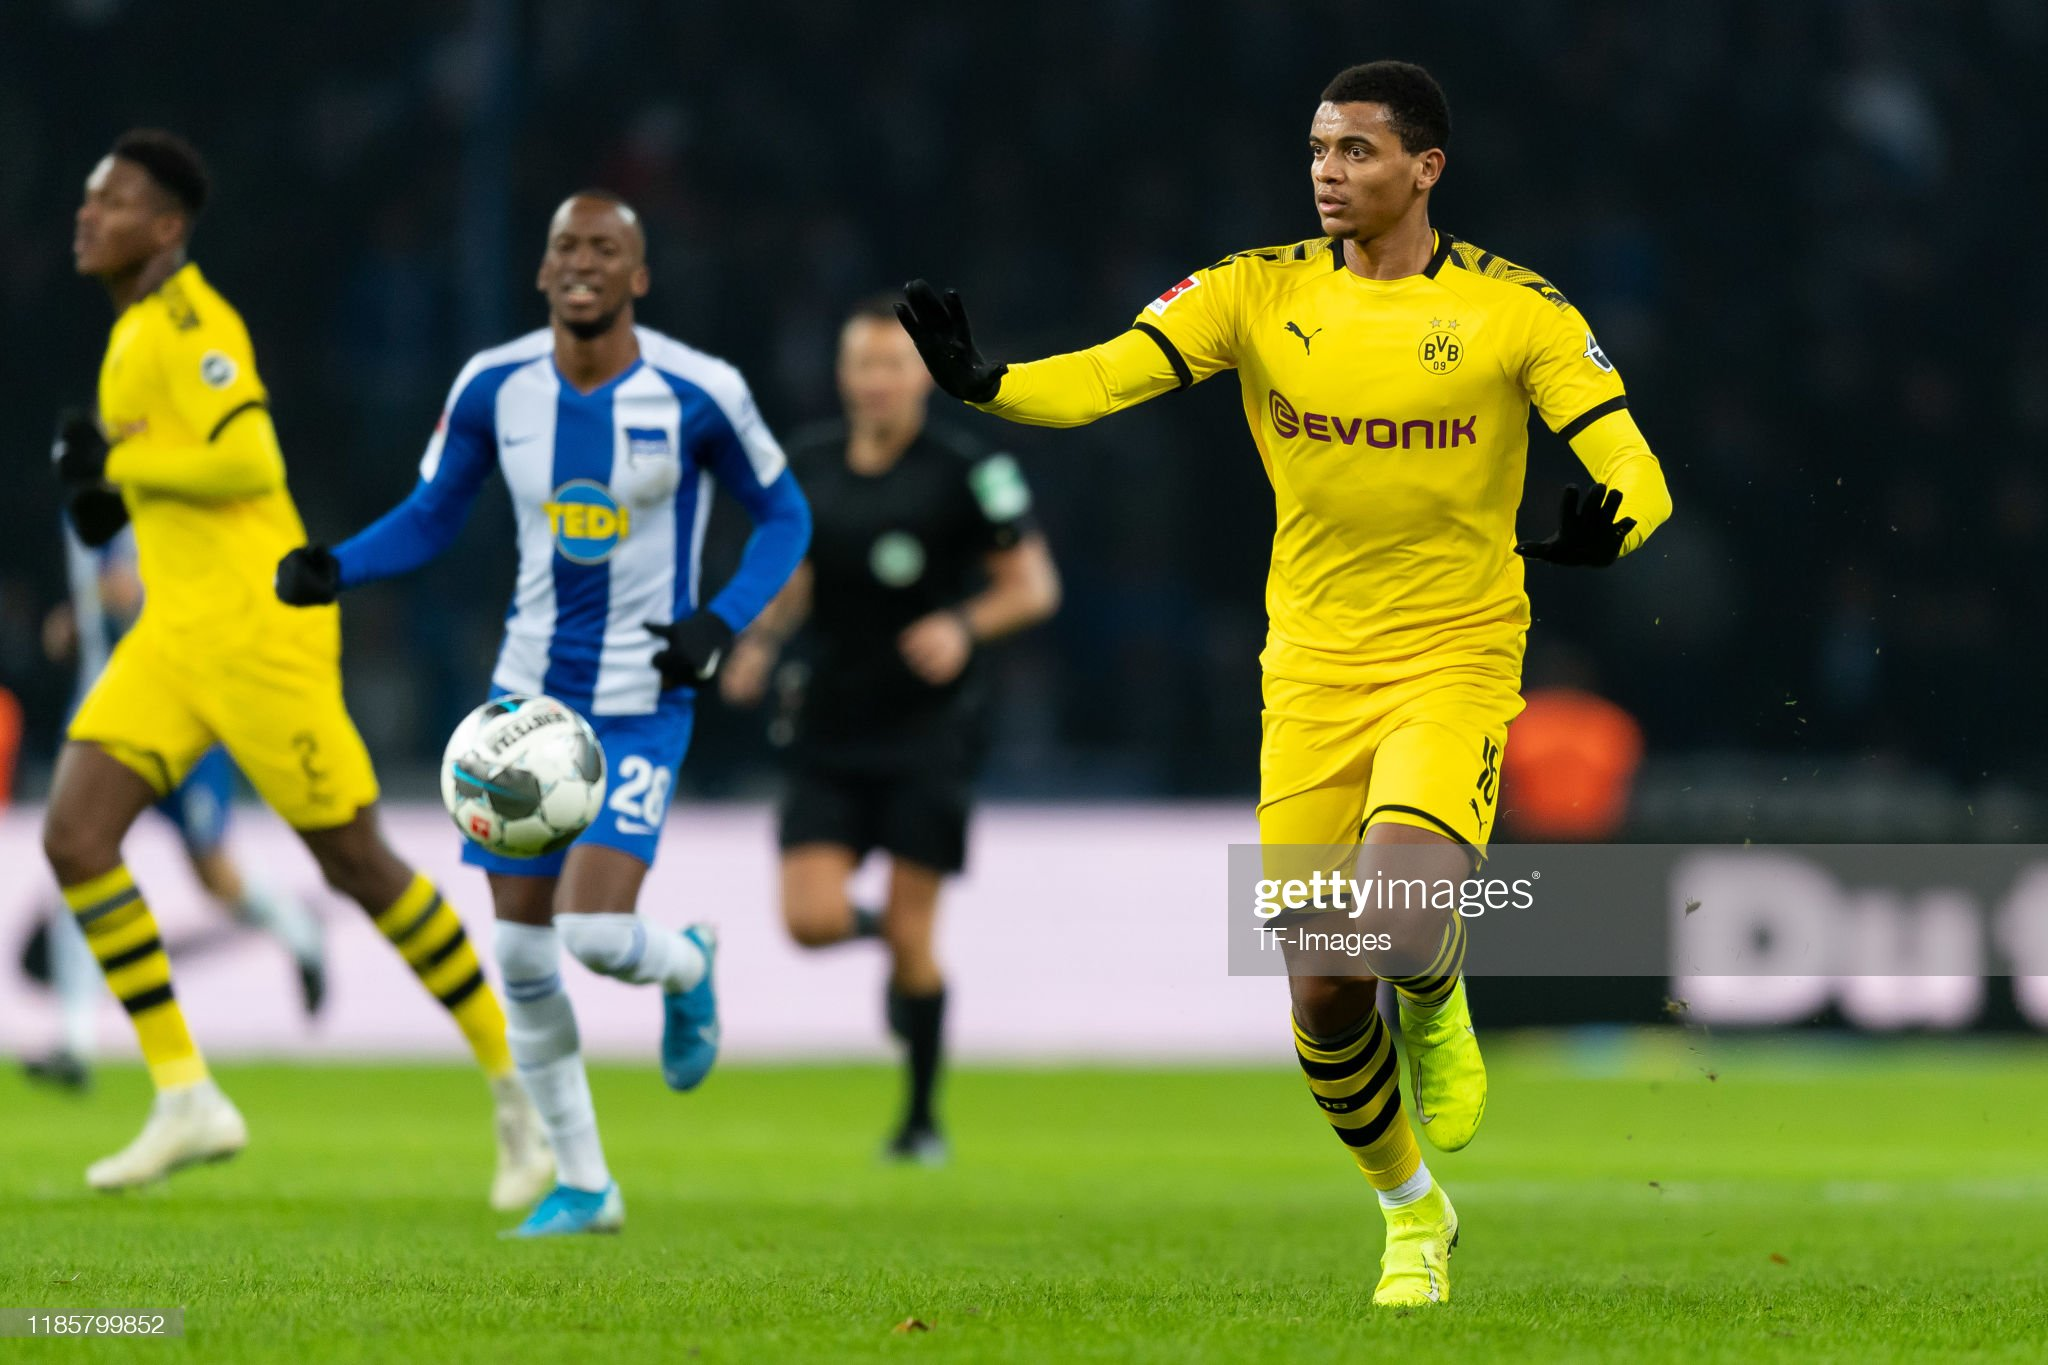 Dortmund vs Hertha Berlin Preview, prediction and odds